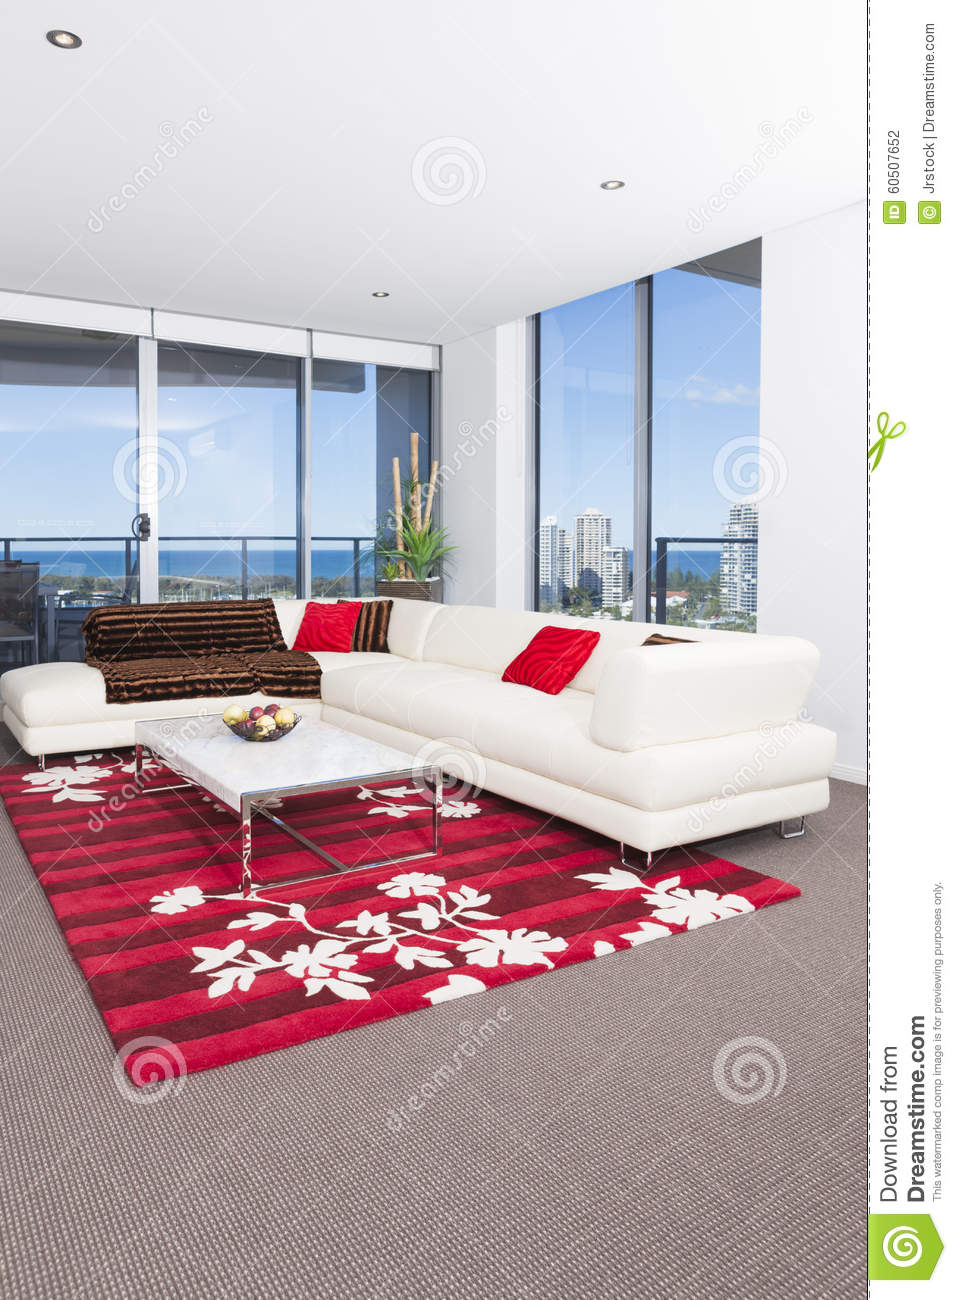 Tapis Rouge Salon Salon Spacieux Avec Un Tapis Rouge Photo Stock Image Du Grand